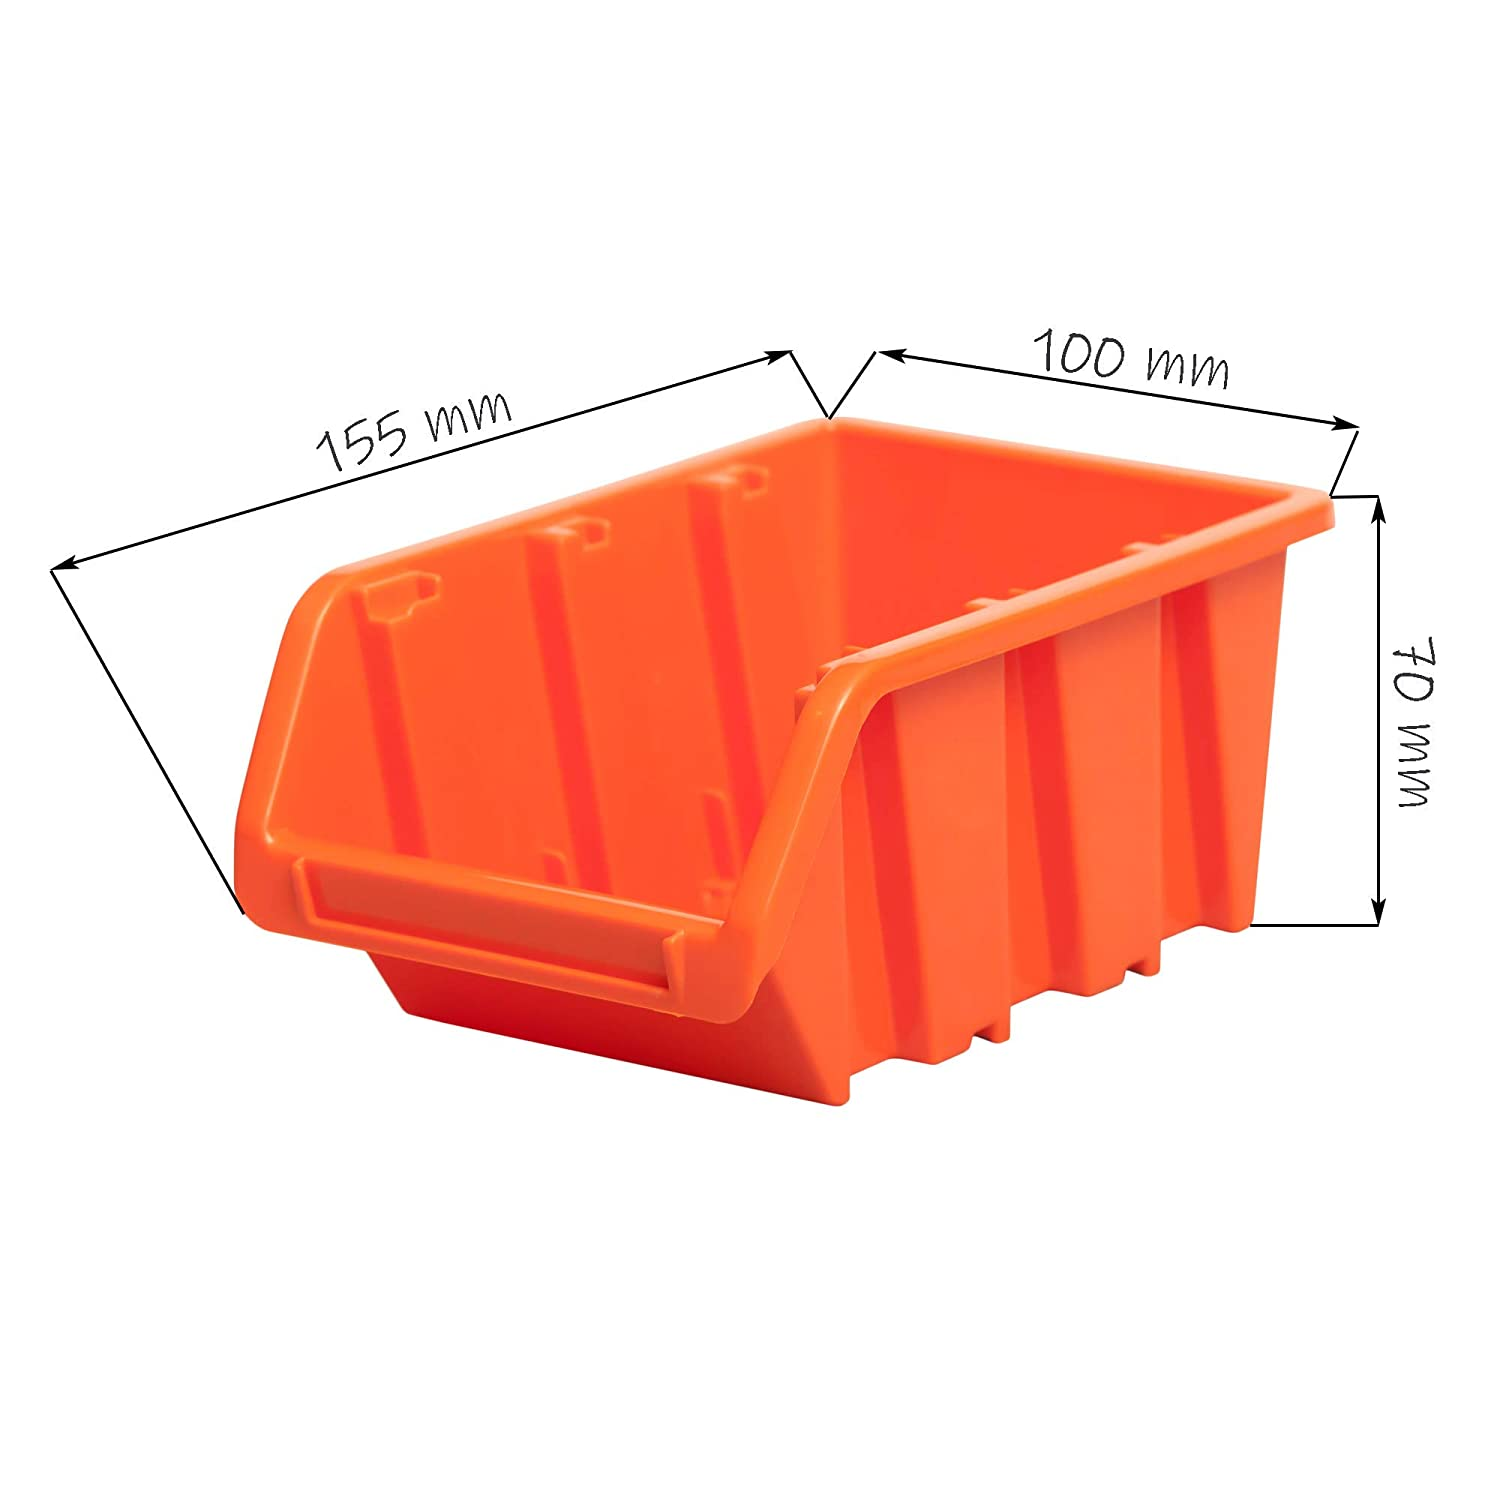 Wandregal Regal InBox Gr.2 orange Werkstatt Lochwand Starke Wandplatte 126 tlg